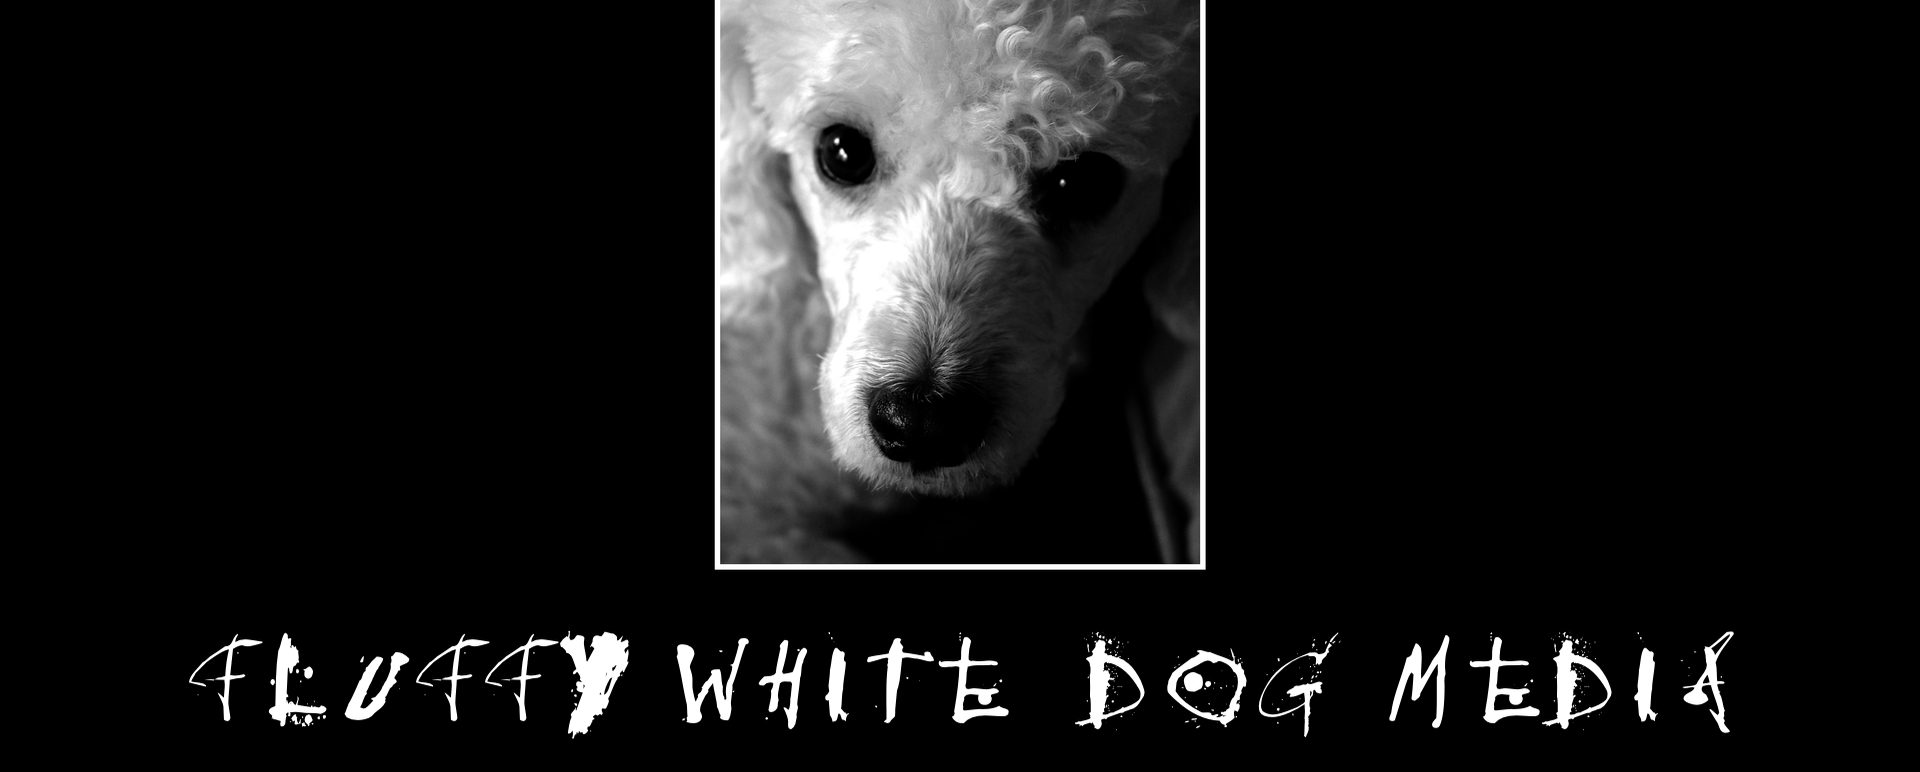 Fluffy White Dog Media